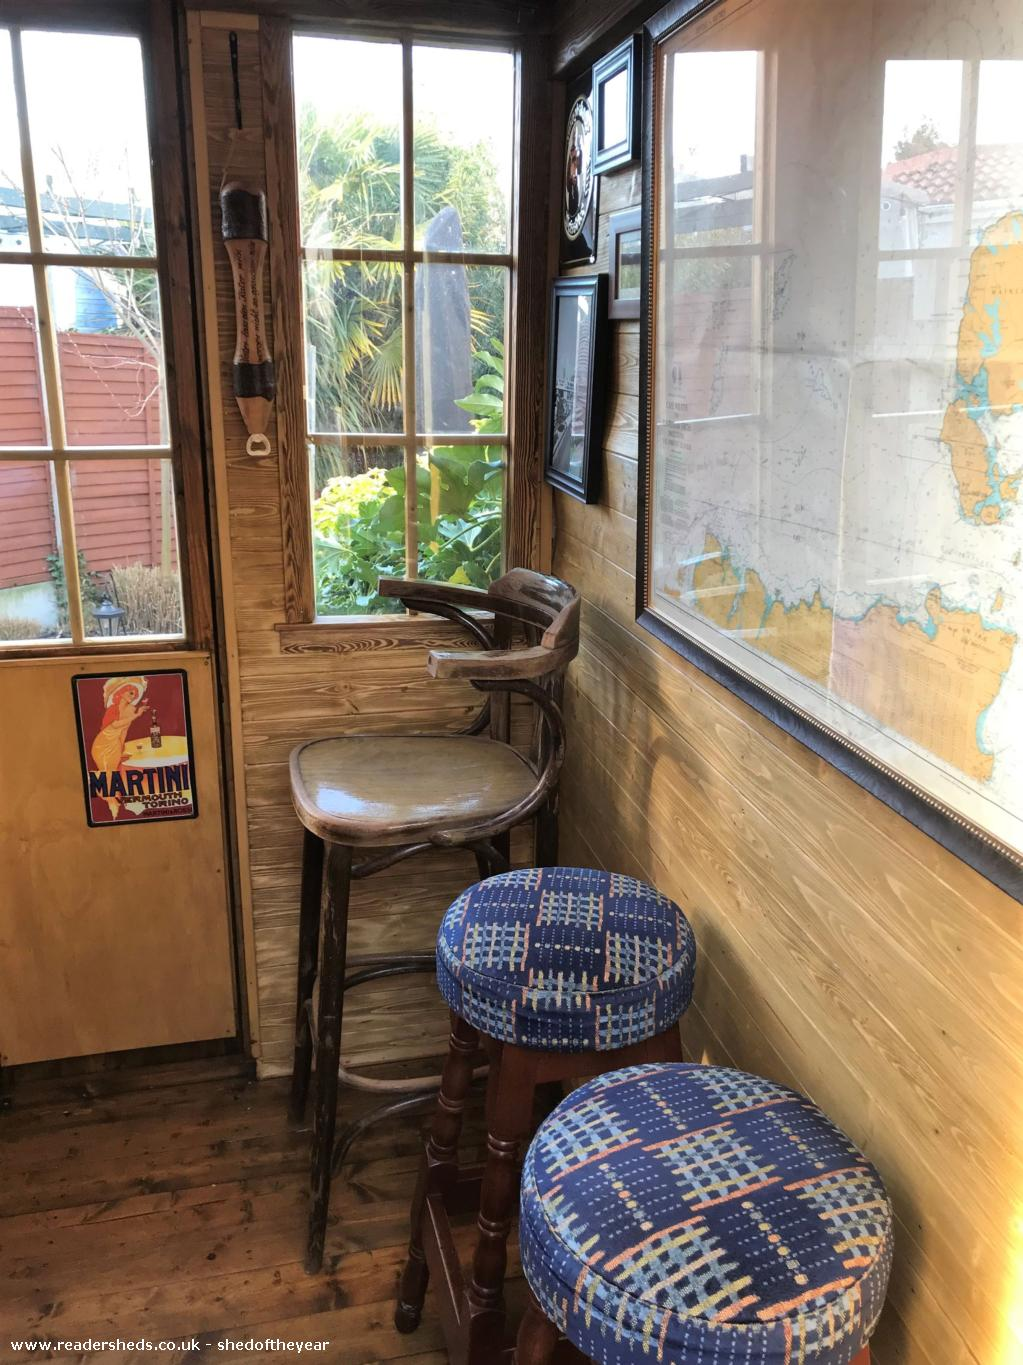 Photo of No. 88.5, entry to Shed of the year-Inside Seating